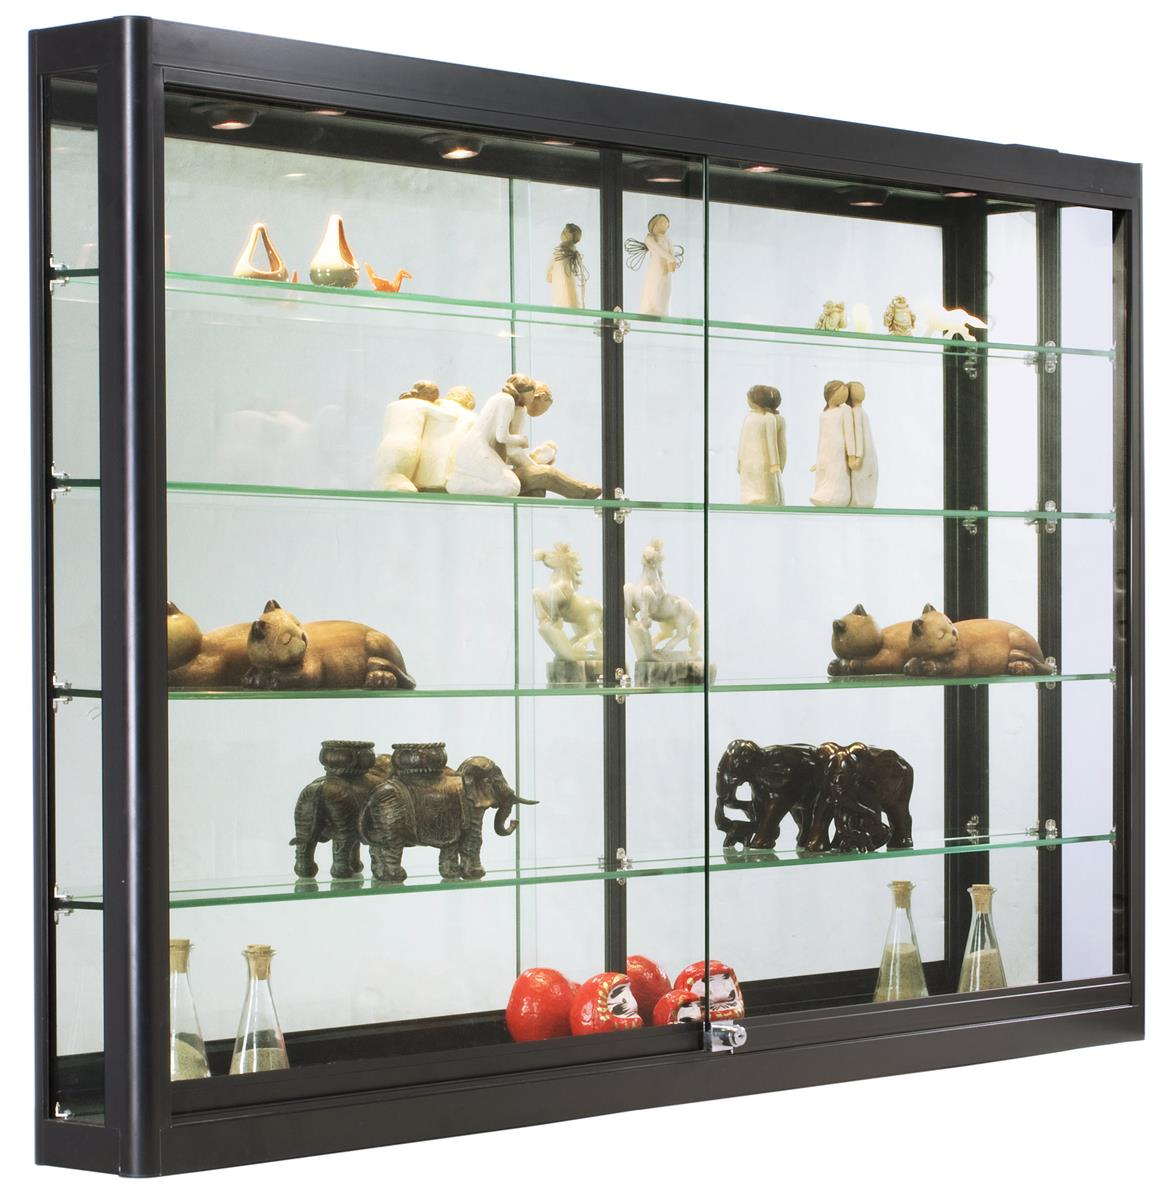 LED Wall Showcase Cabinet Tempered Glass Shelves on Wall Mounted Storage Furniture